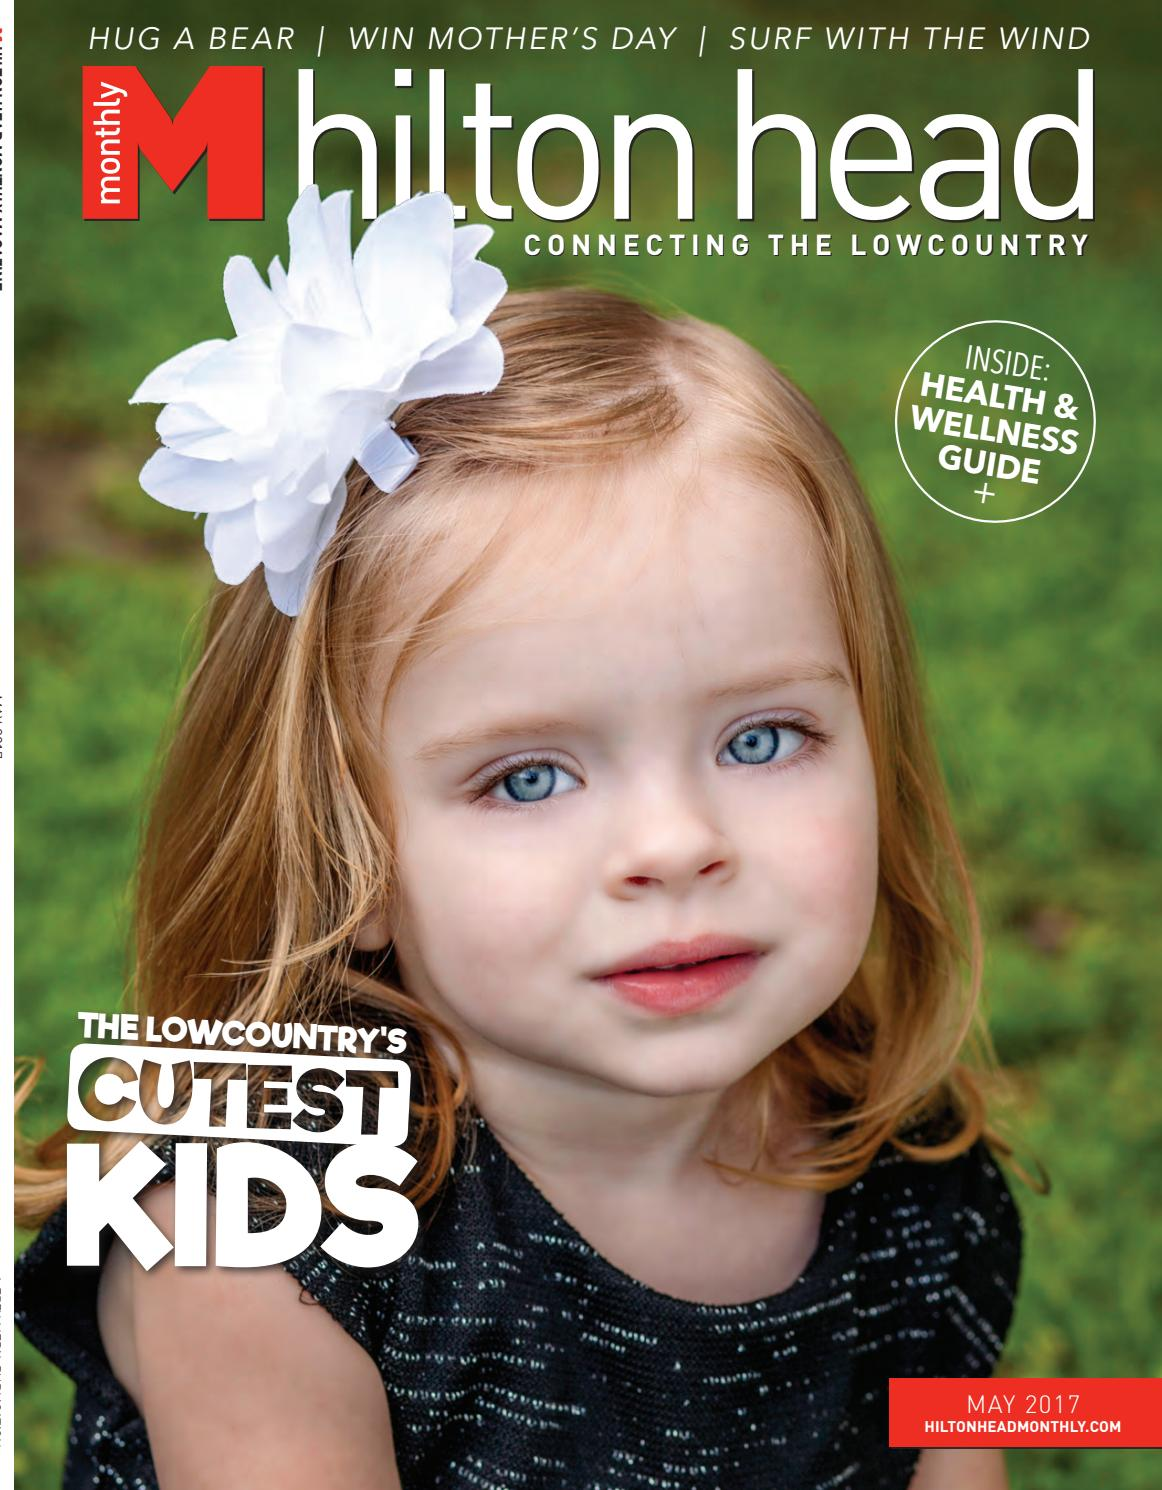 Hilton Head Monthly February By Hilton Head Monthly Issuu - Kid threatened suspension making 14000 selling sweets school